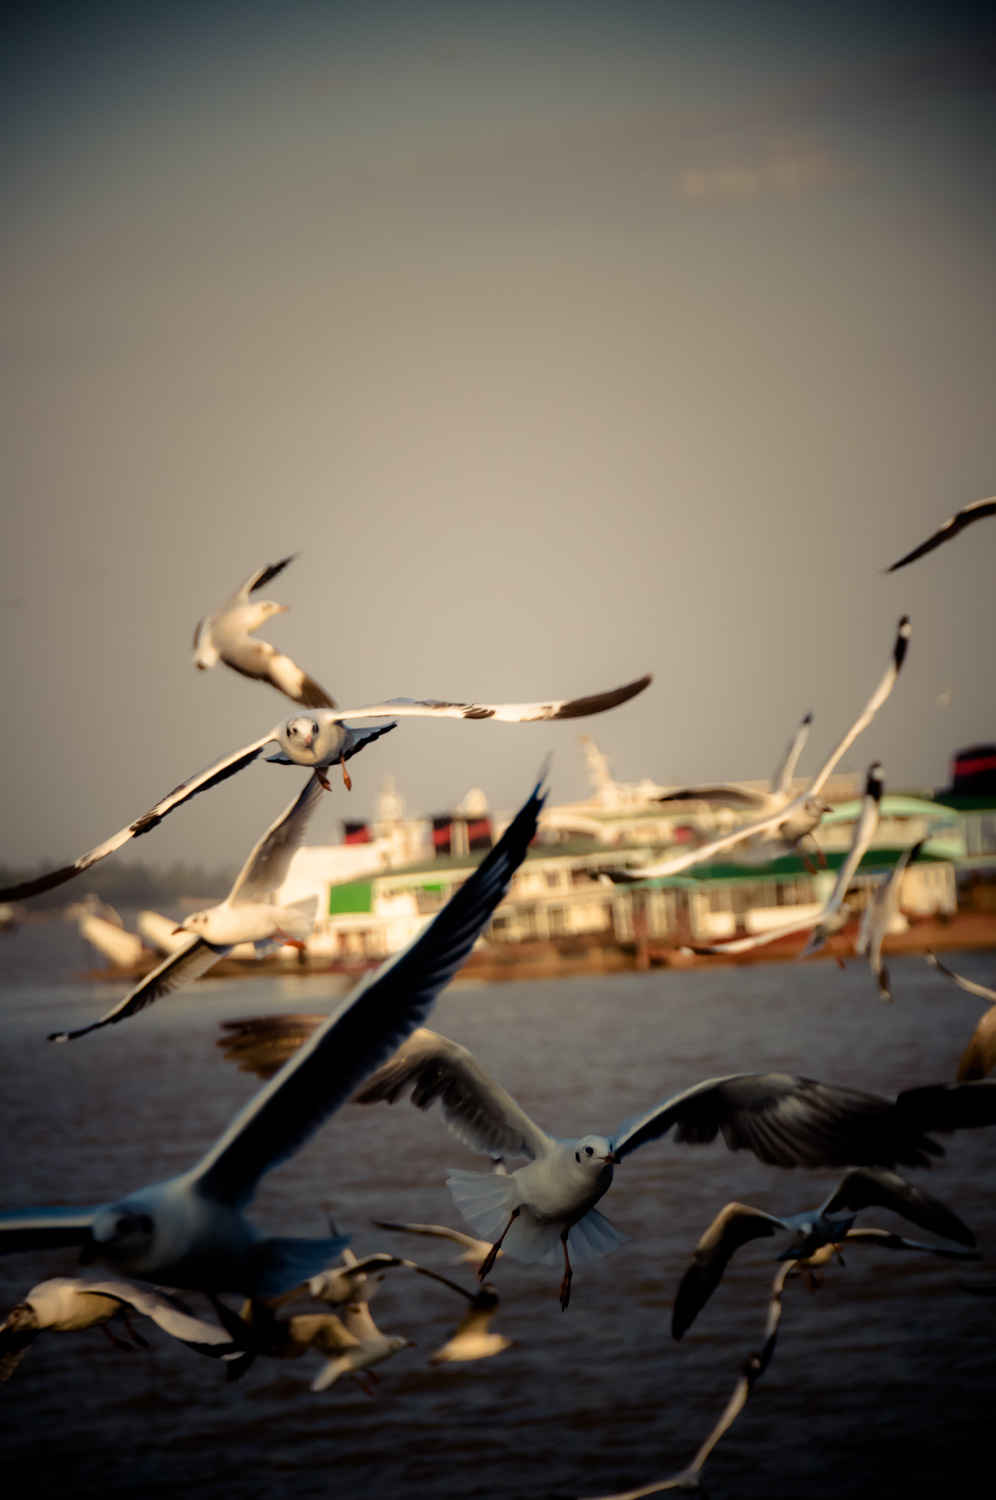 Heading back to Yangon, the Seagulls flock to the side of the ferry